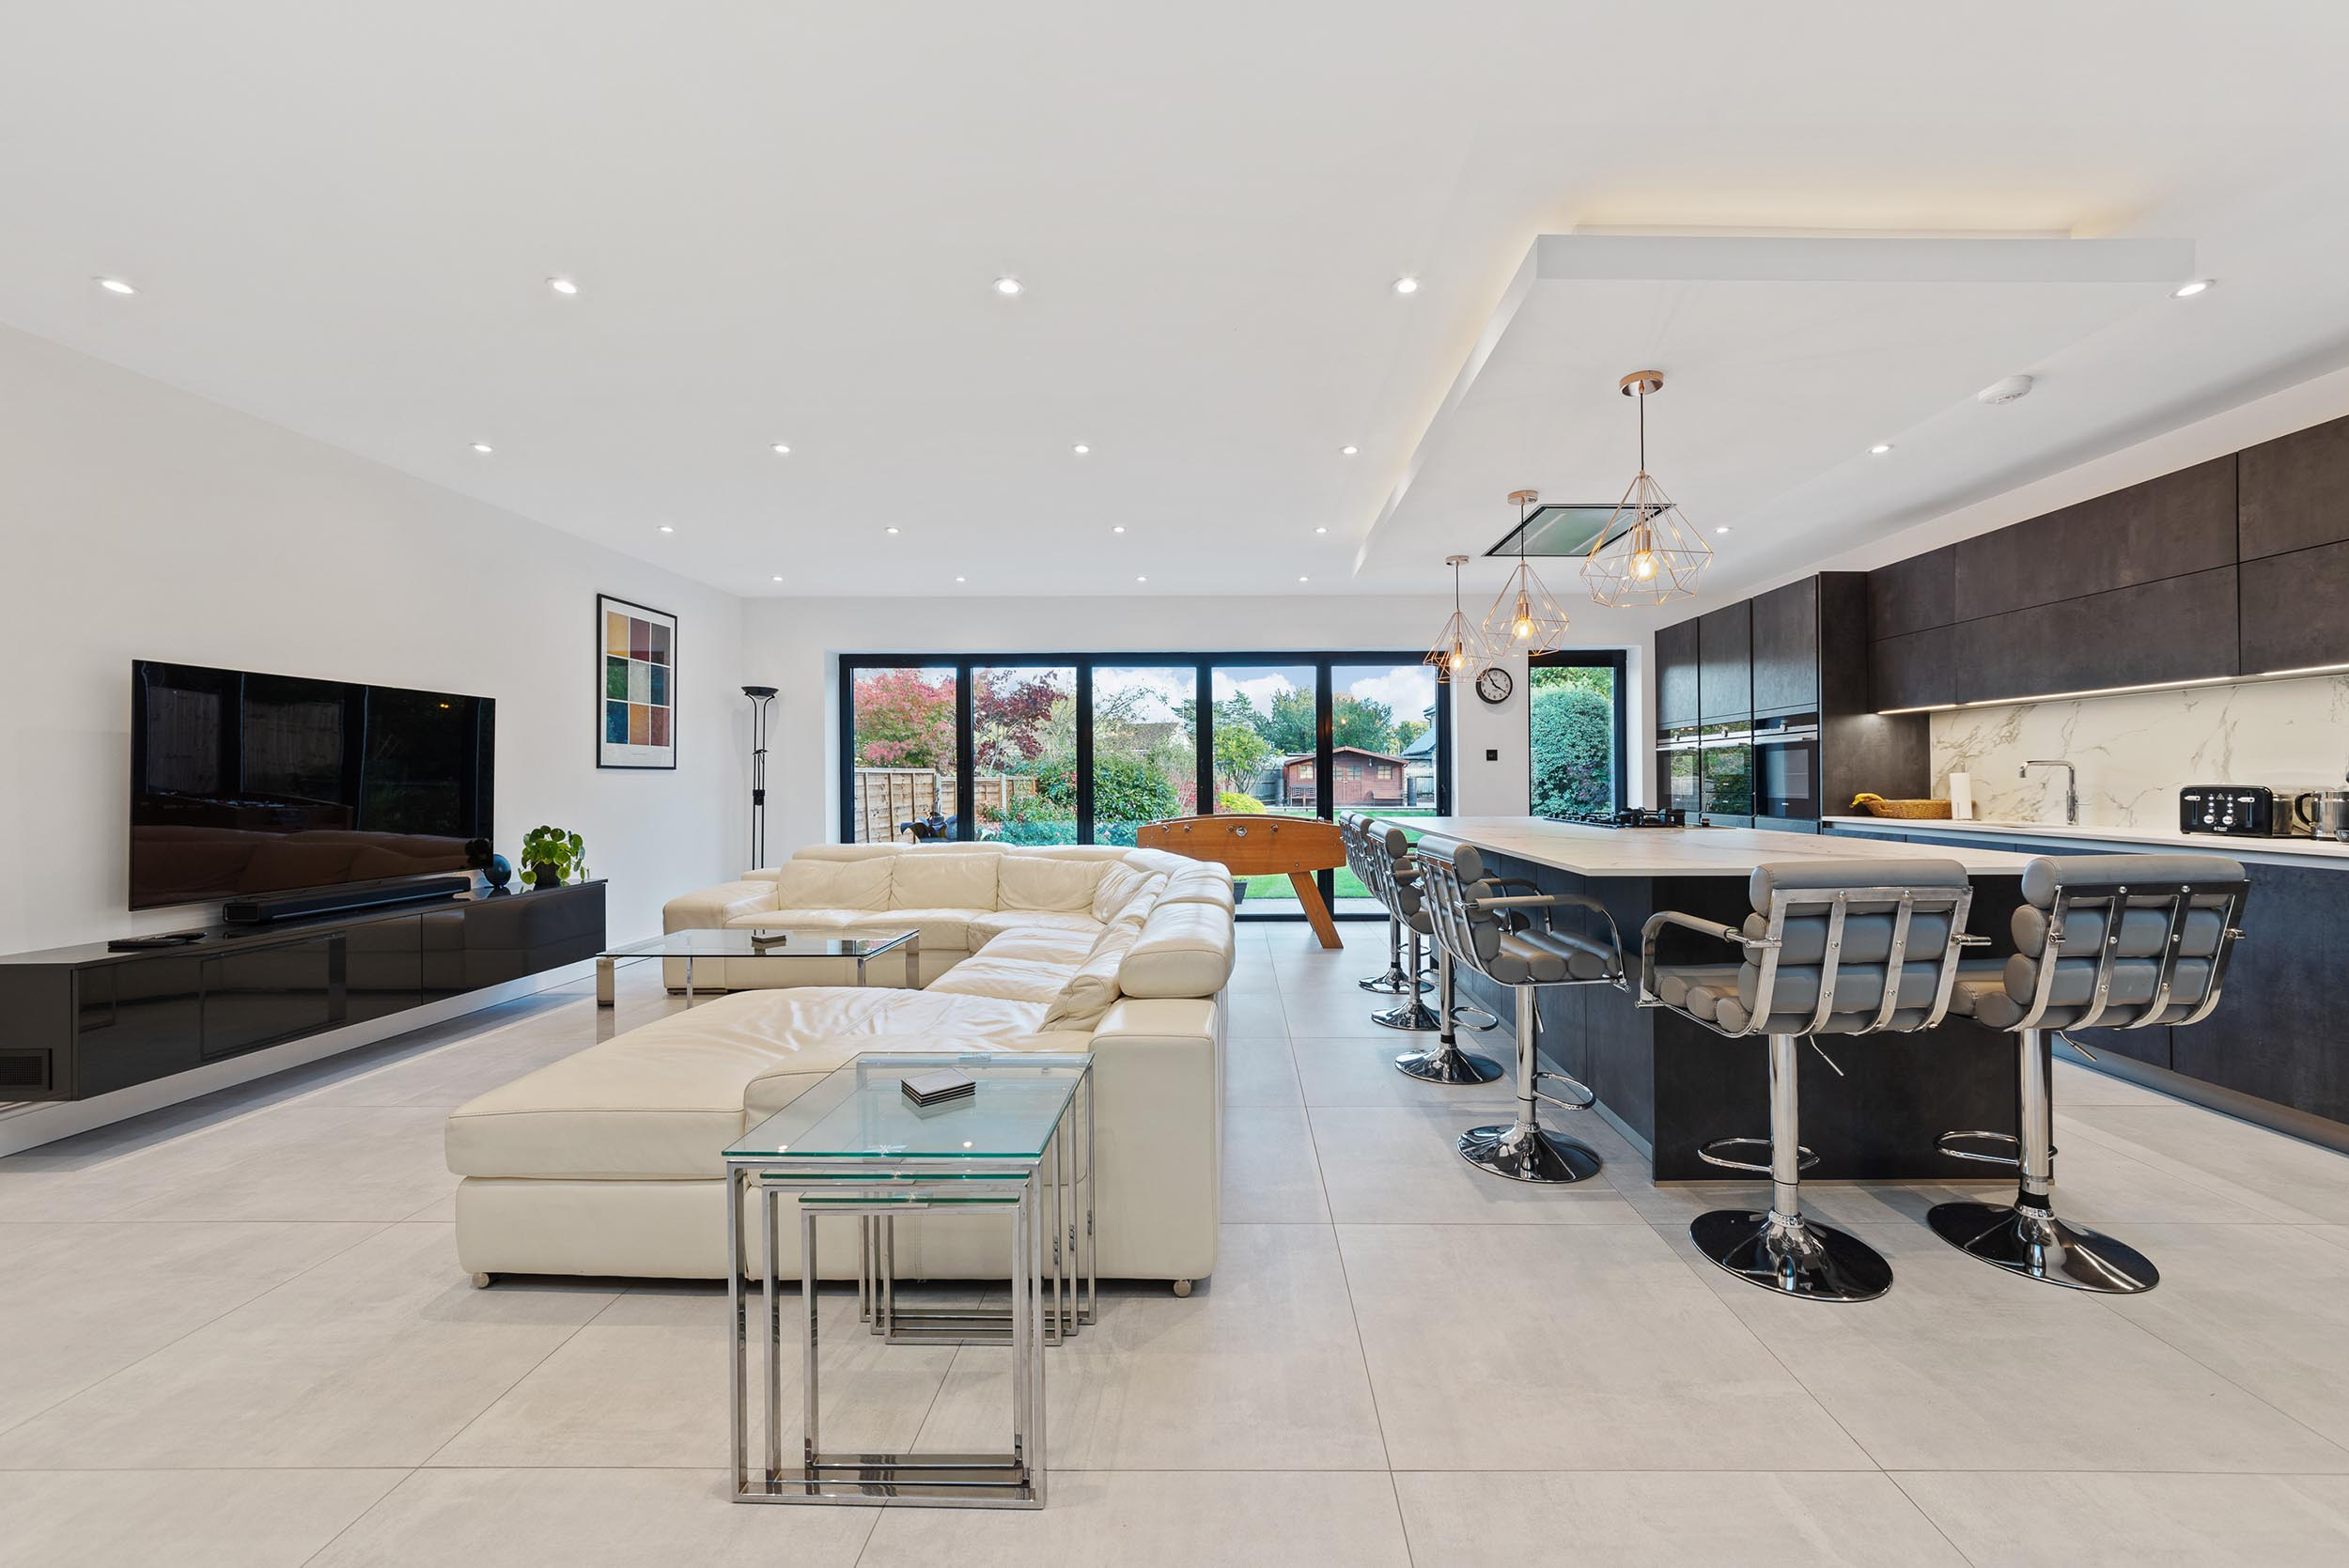 61-and-63-Wades-Hill-N21-1BD-Small-Res-12